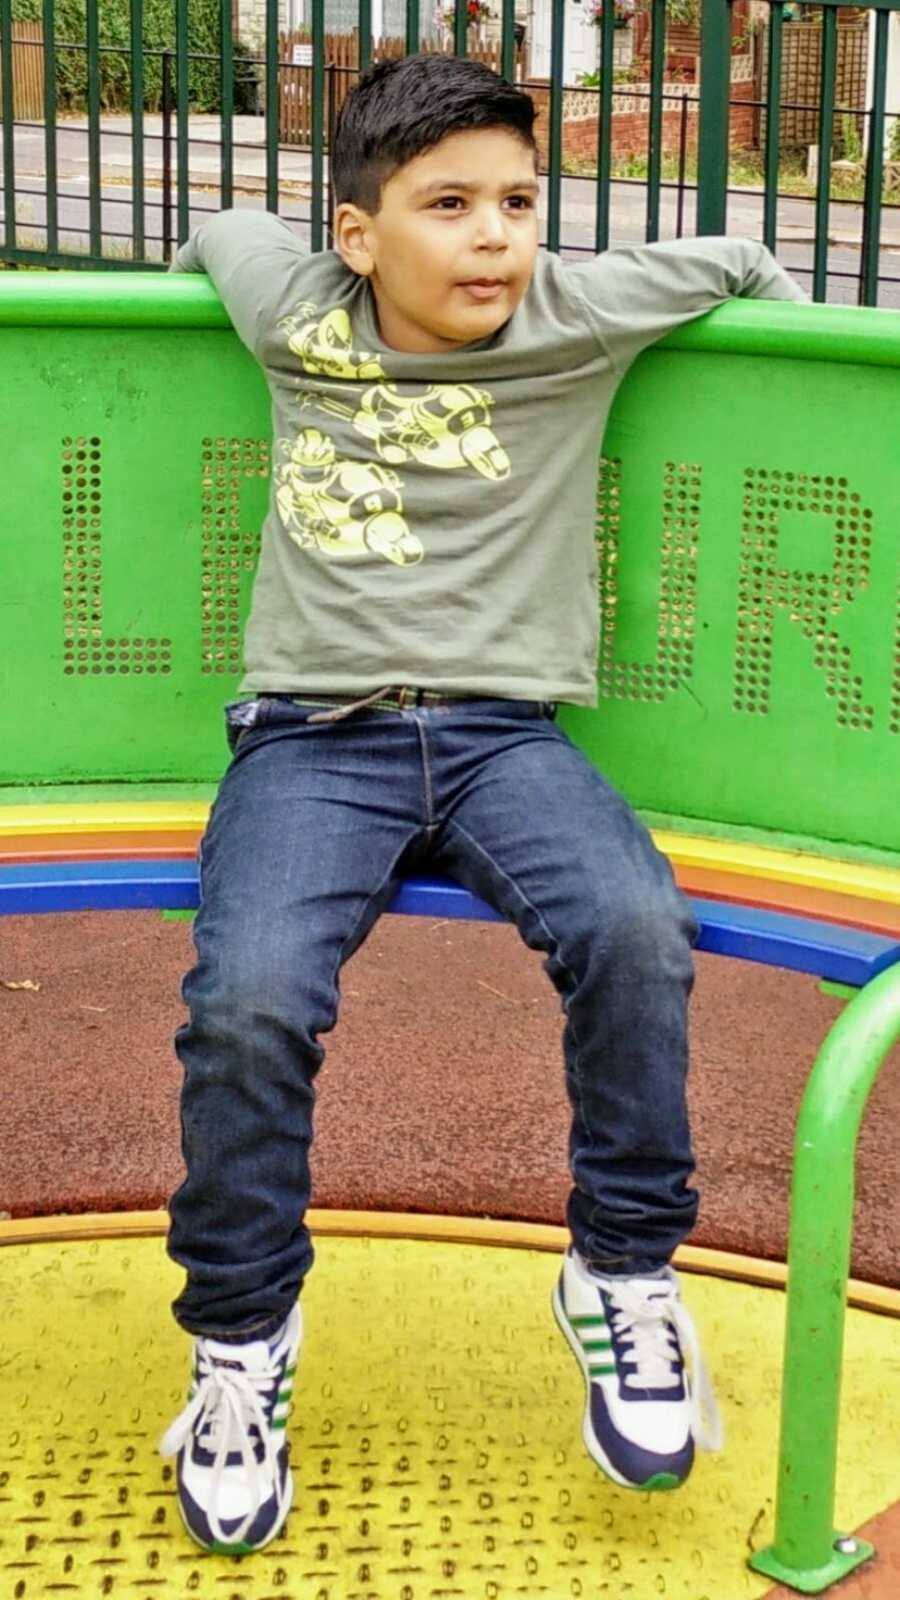 A boy with nonverbal autism sits on a playground